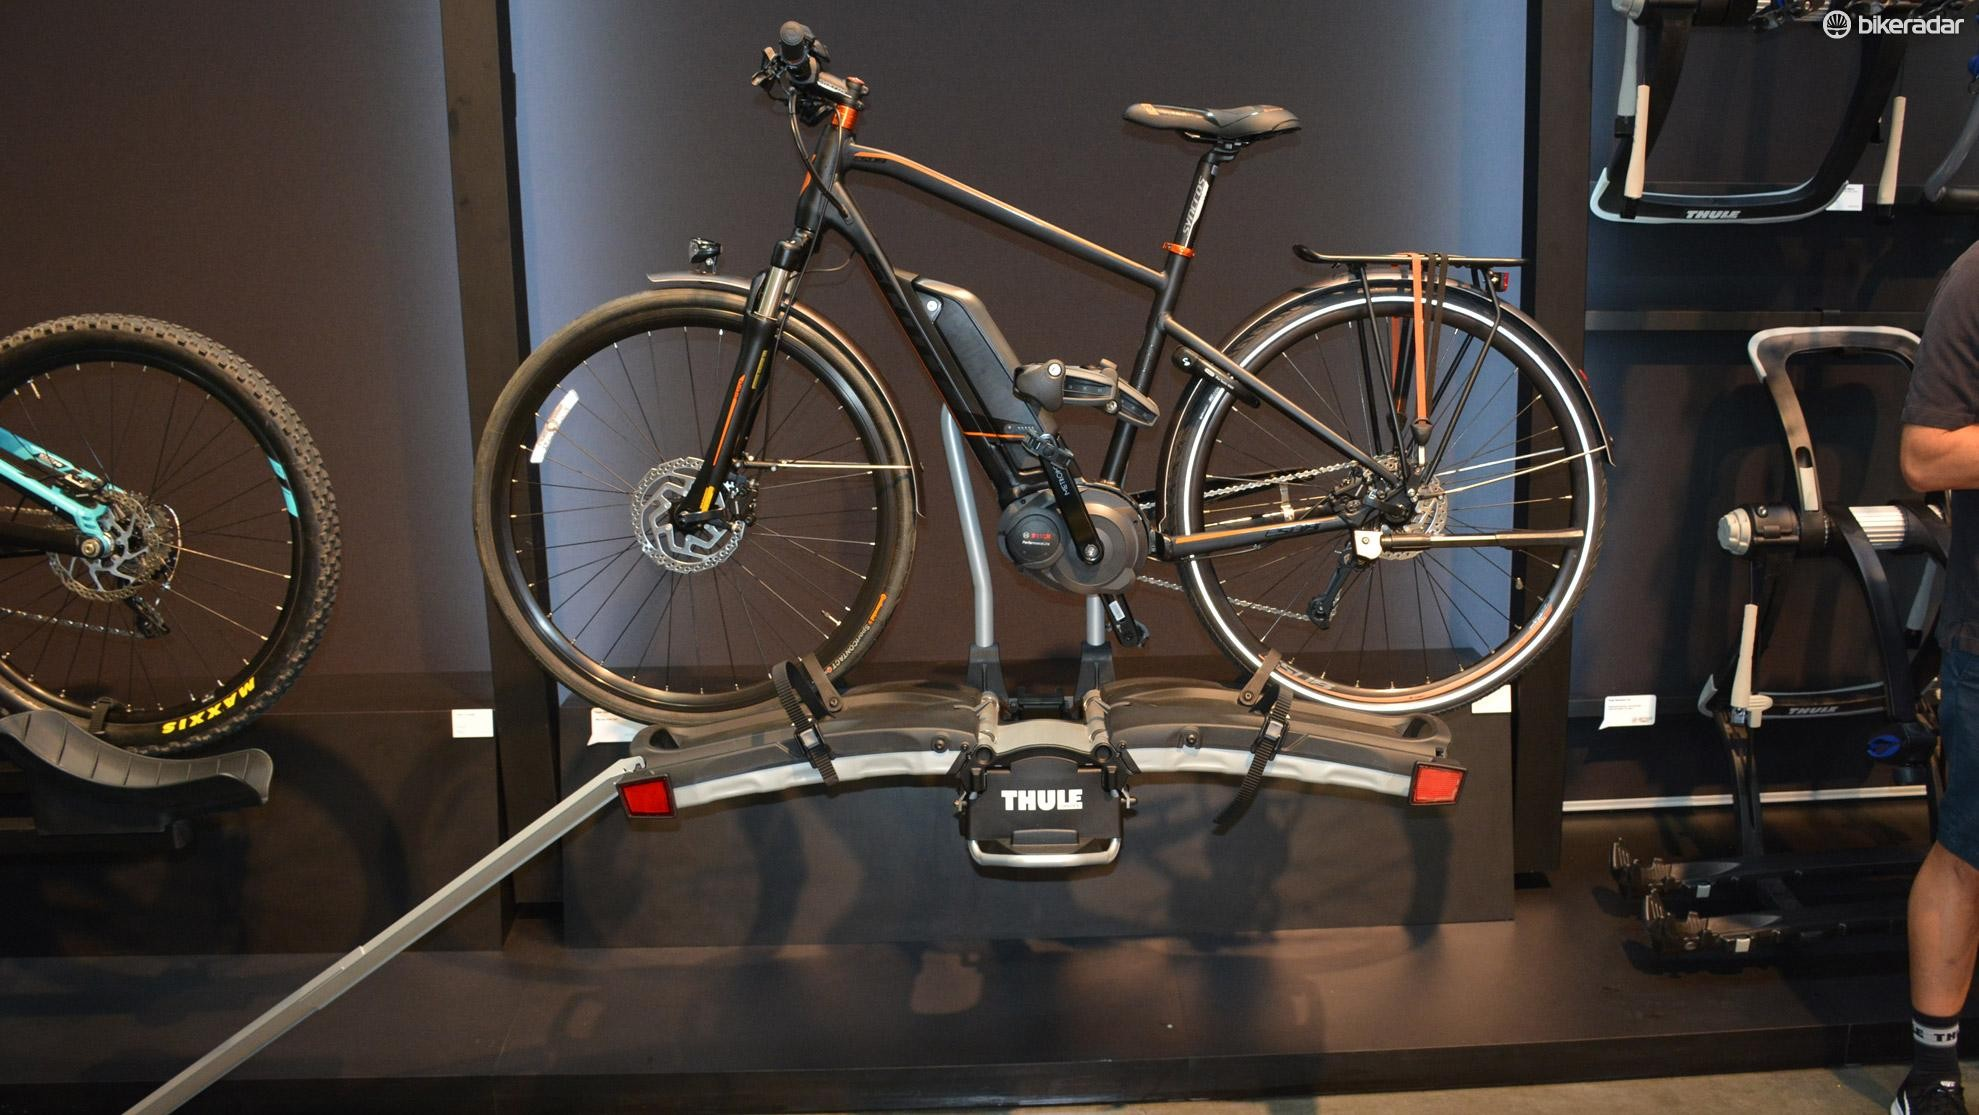 Thule's EasyFold rack is made for e-bikes